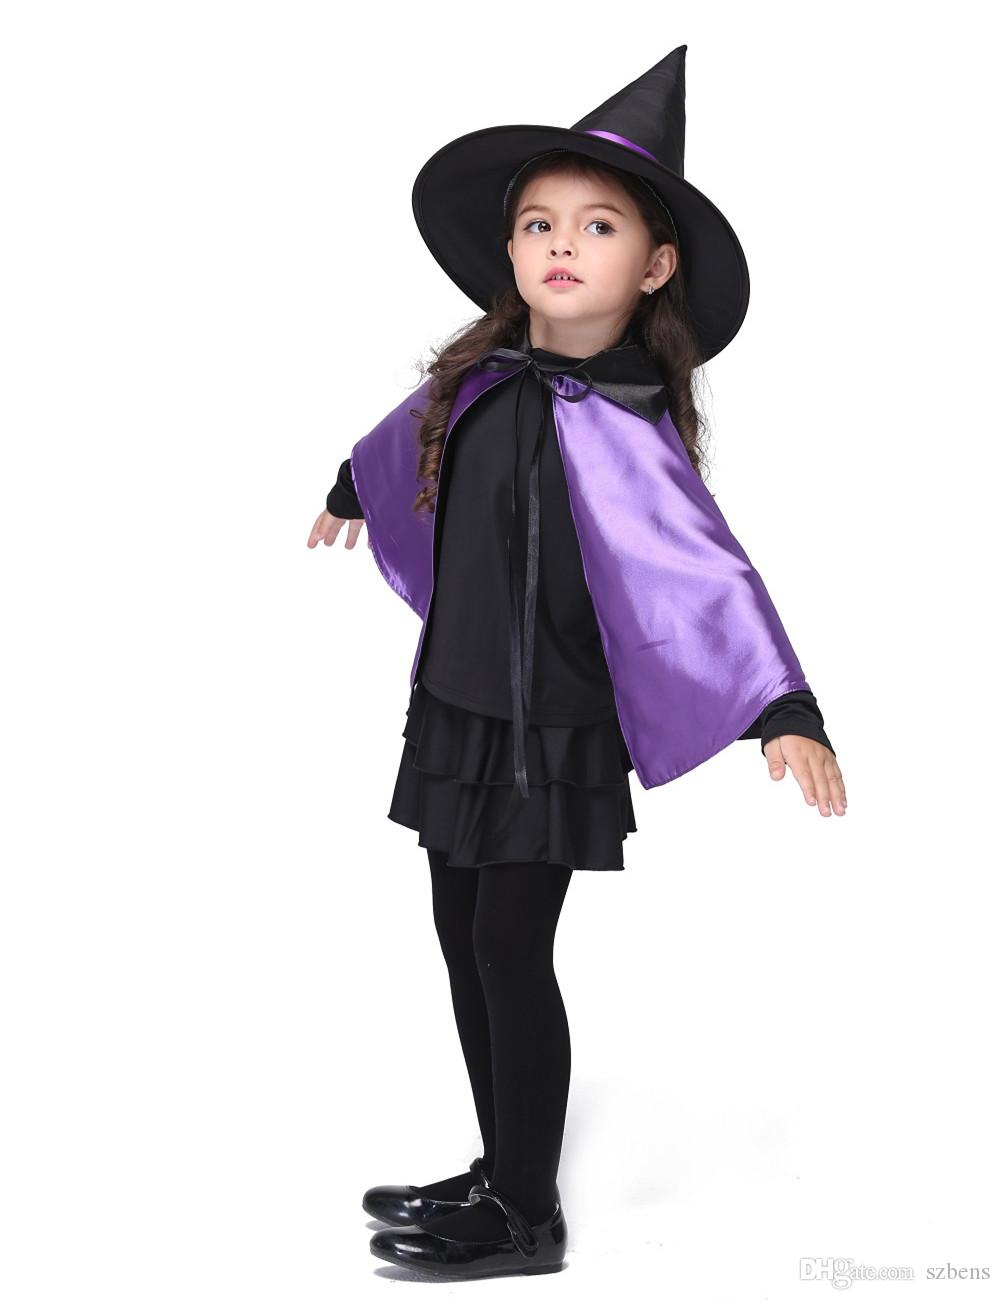 witch costume halloween costume for kids stage & dance wear girls